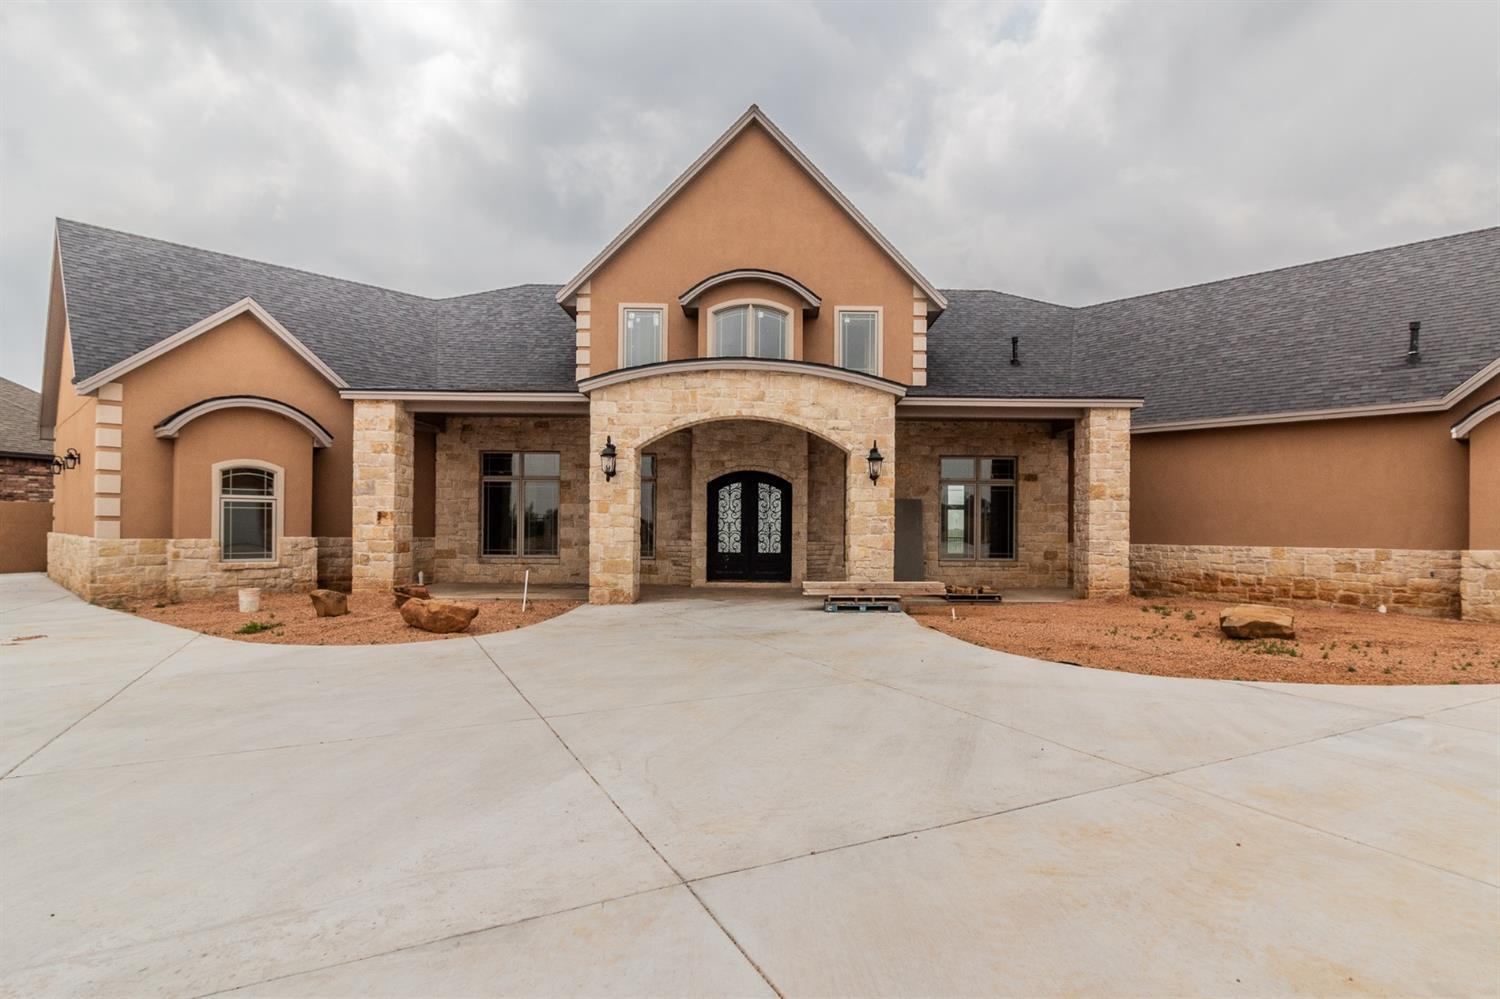 Here we go!!! Welcome to the Estate at Buffalo Springs Lake with 4 bedroom 5 bath 8 garage spaces. Totally fenced in with all the lake &  canyon views this home has it all, even the elevator in the garage! This will be the perfect opportunity to finish the home to your preference. Schedule your private showing today!